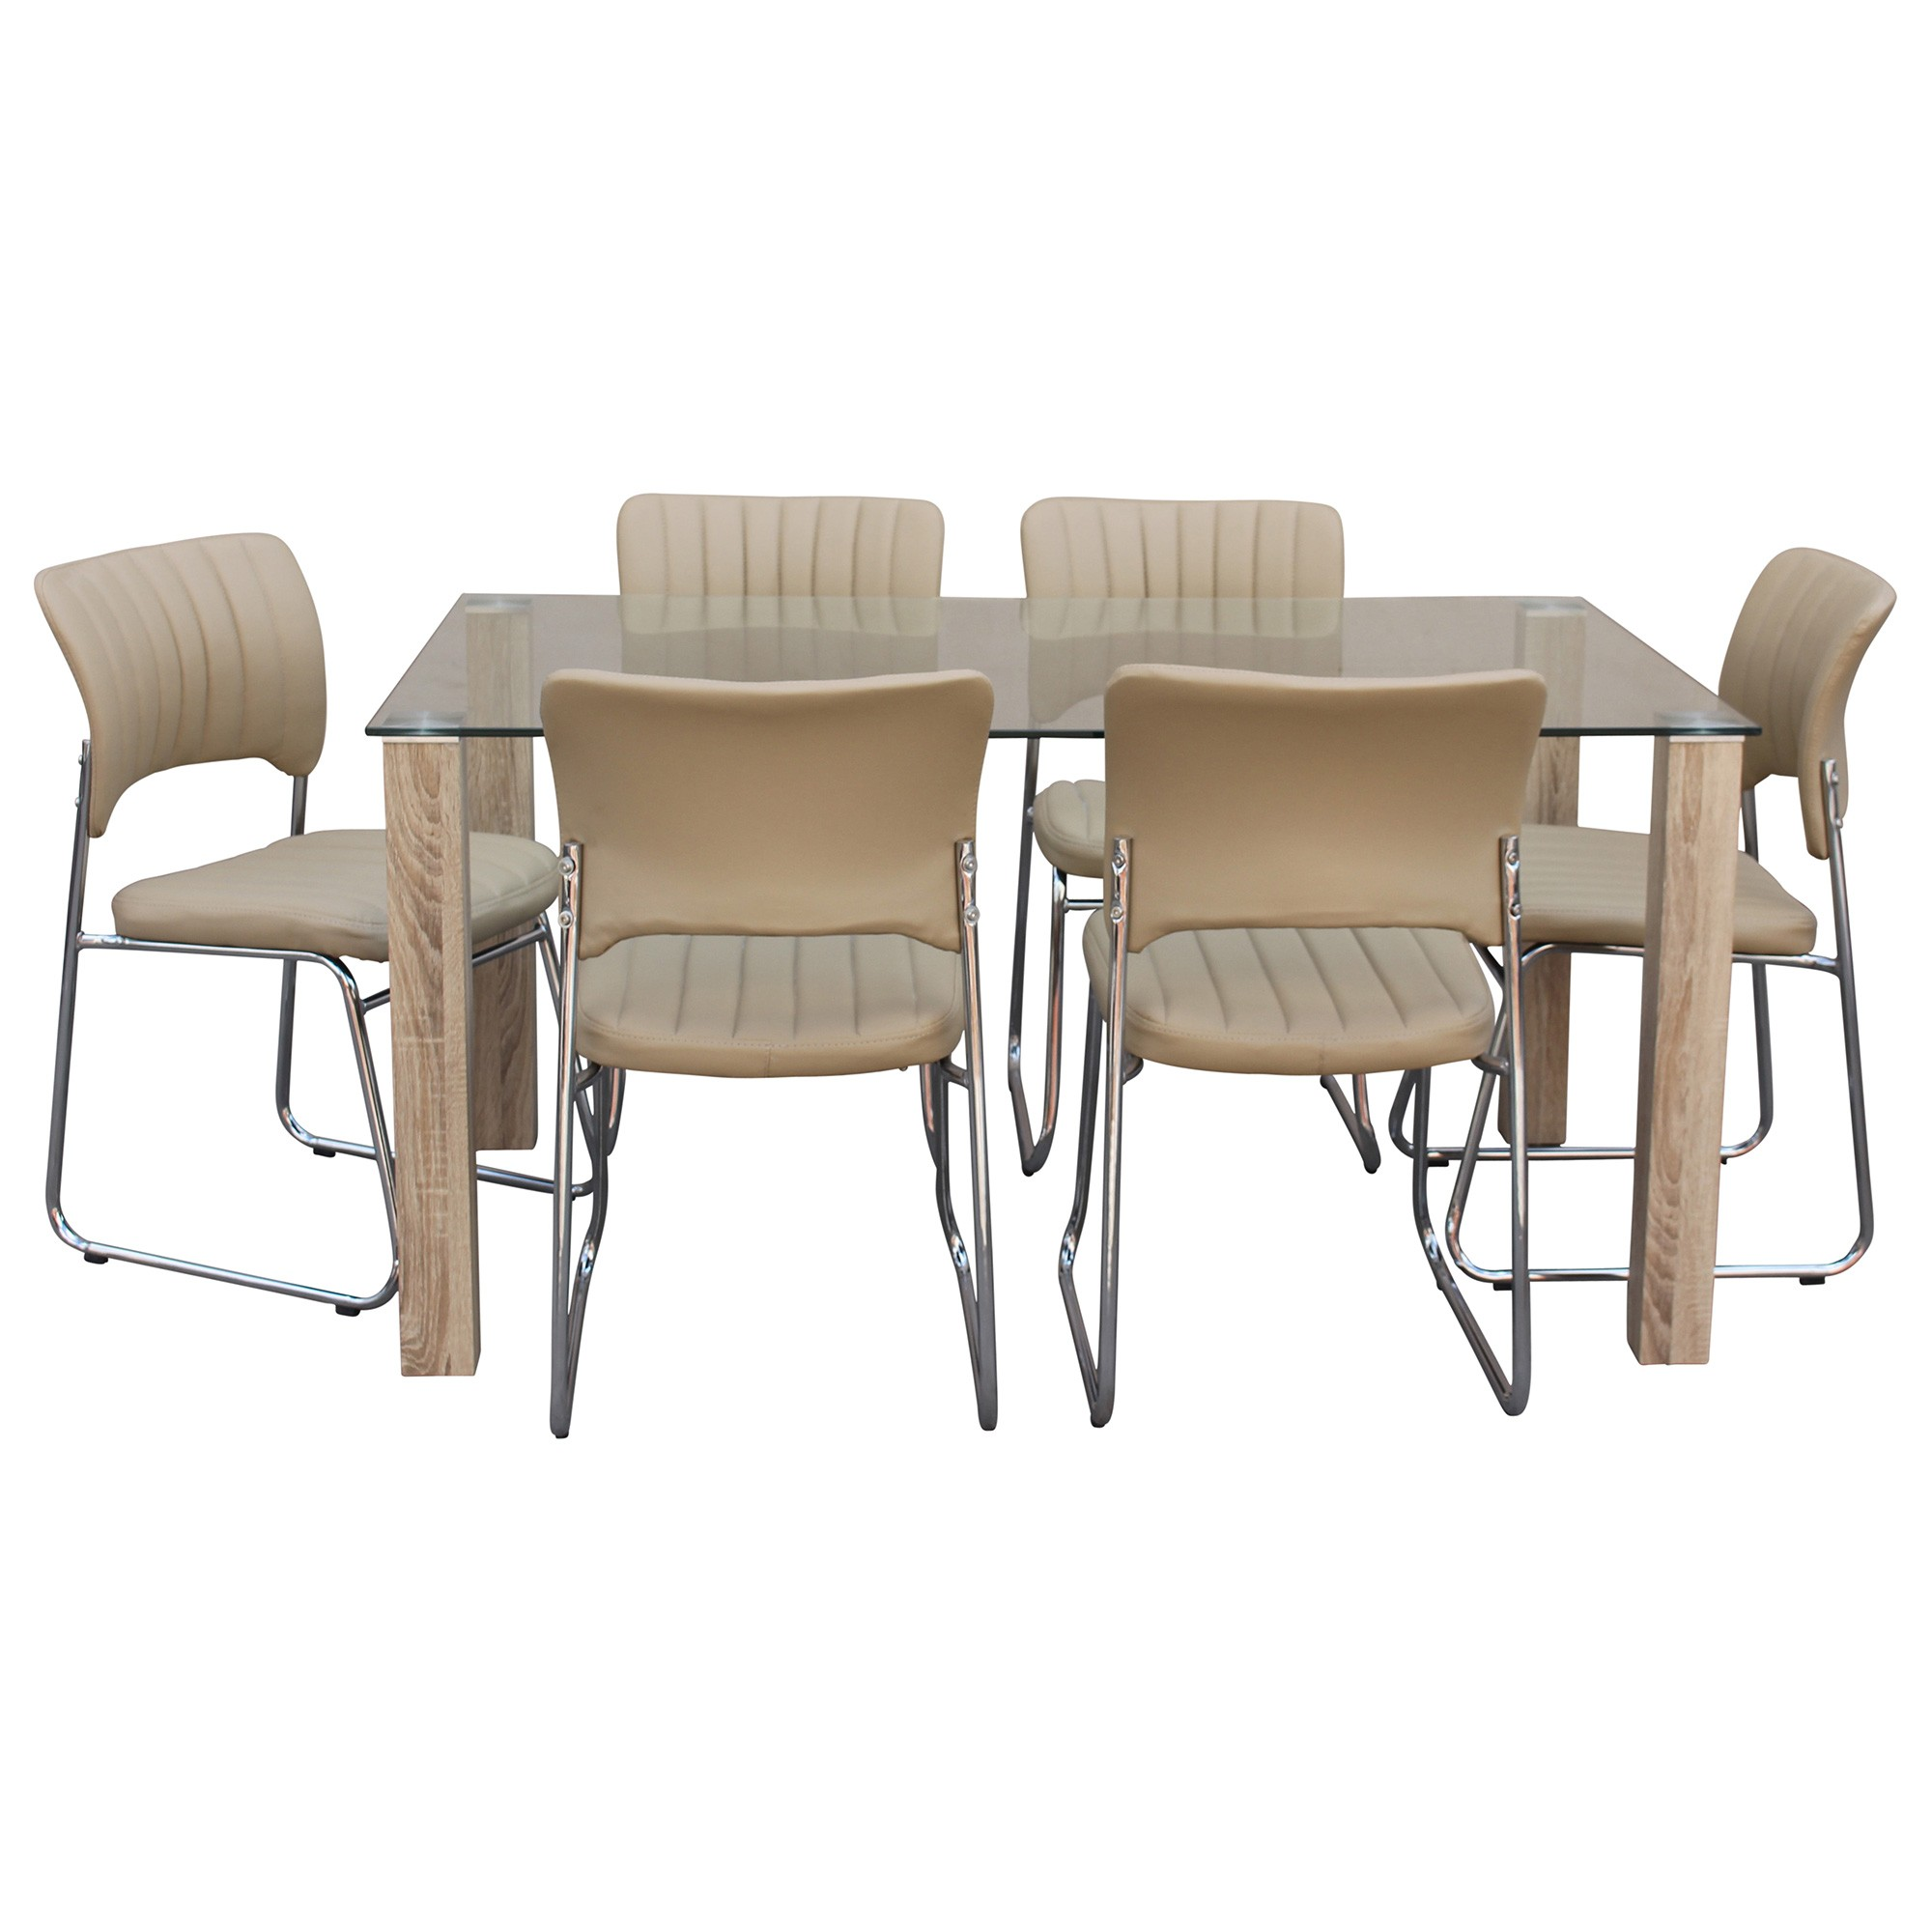 Emilio 7 Piece Glass Top Dining Table Set, 160cm, Cream Moritz Chair